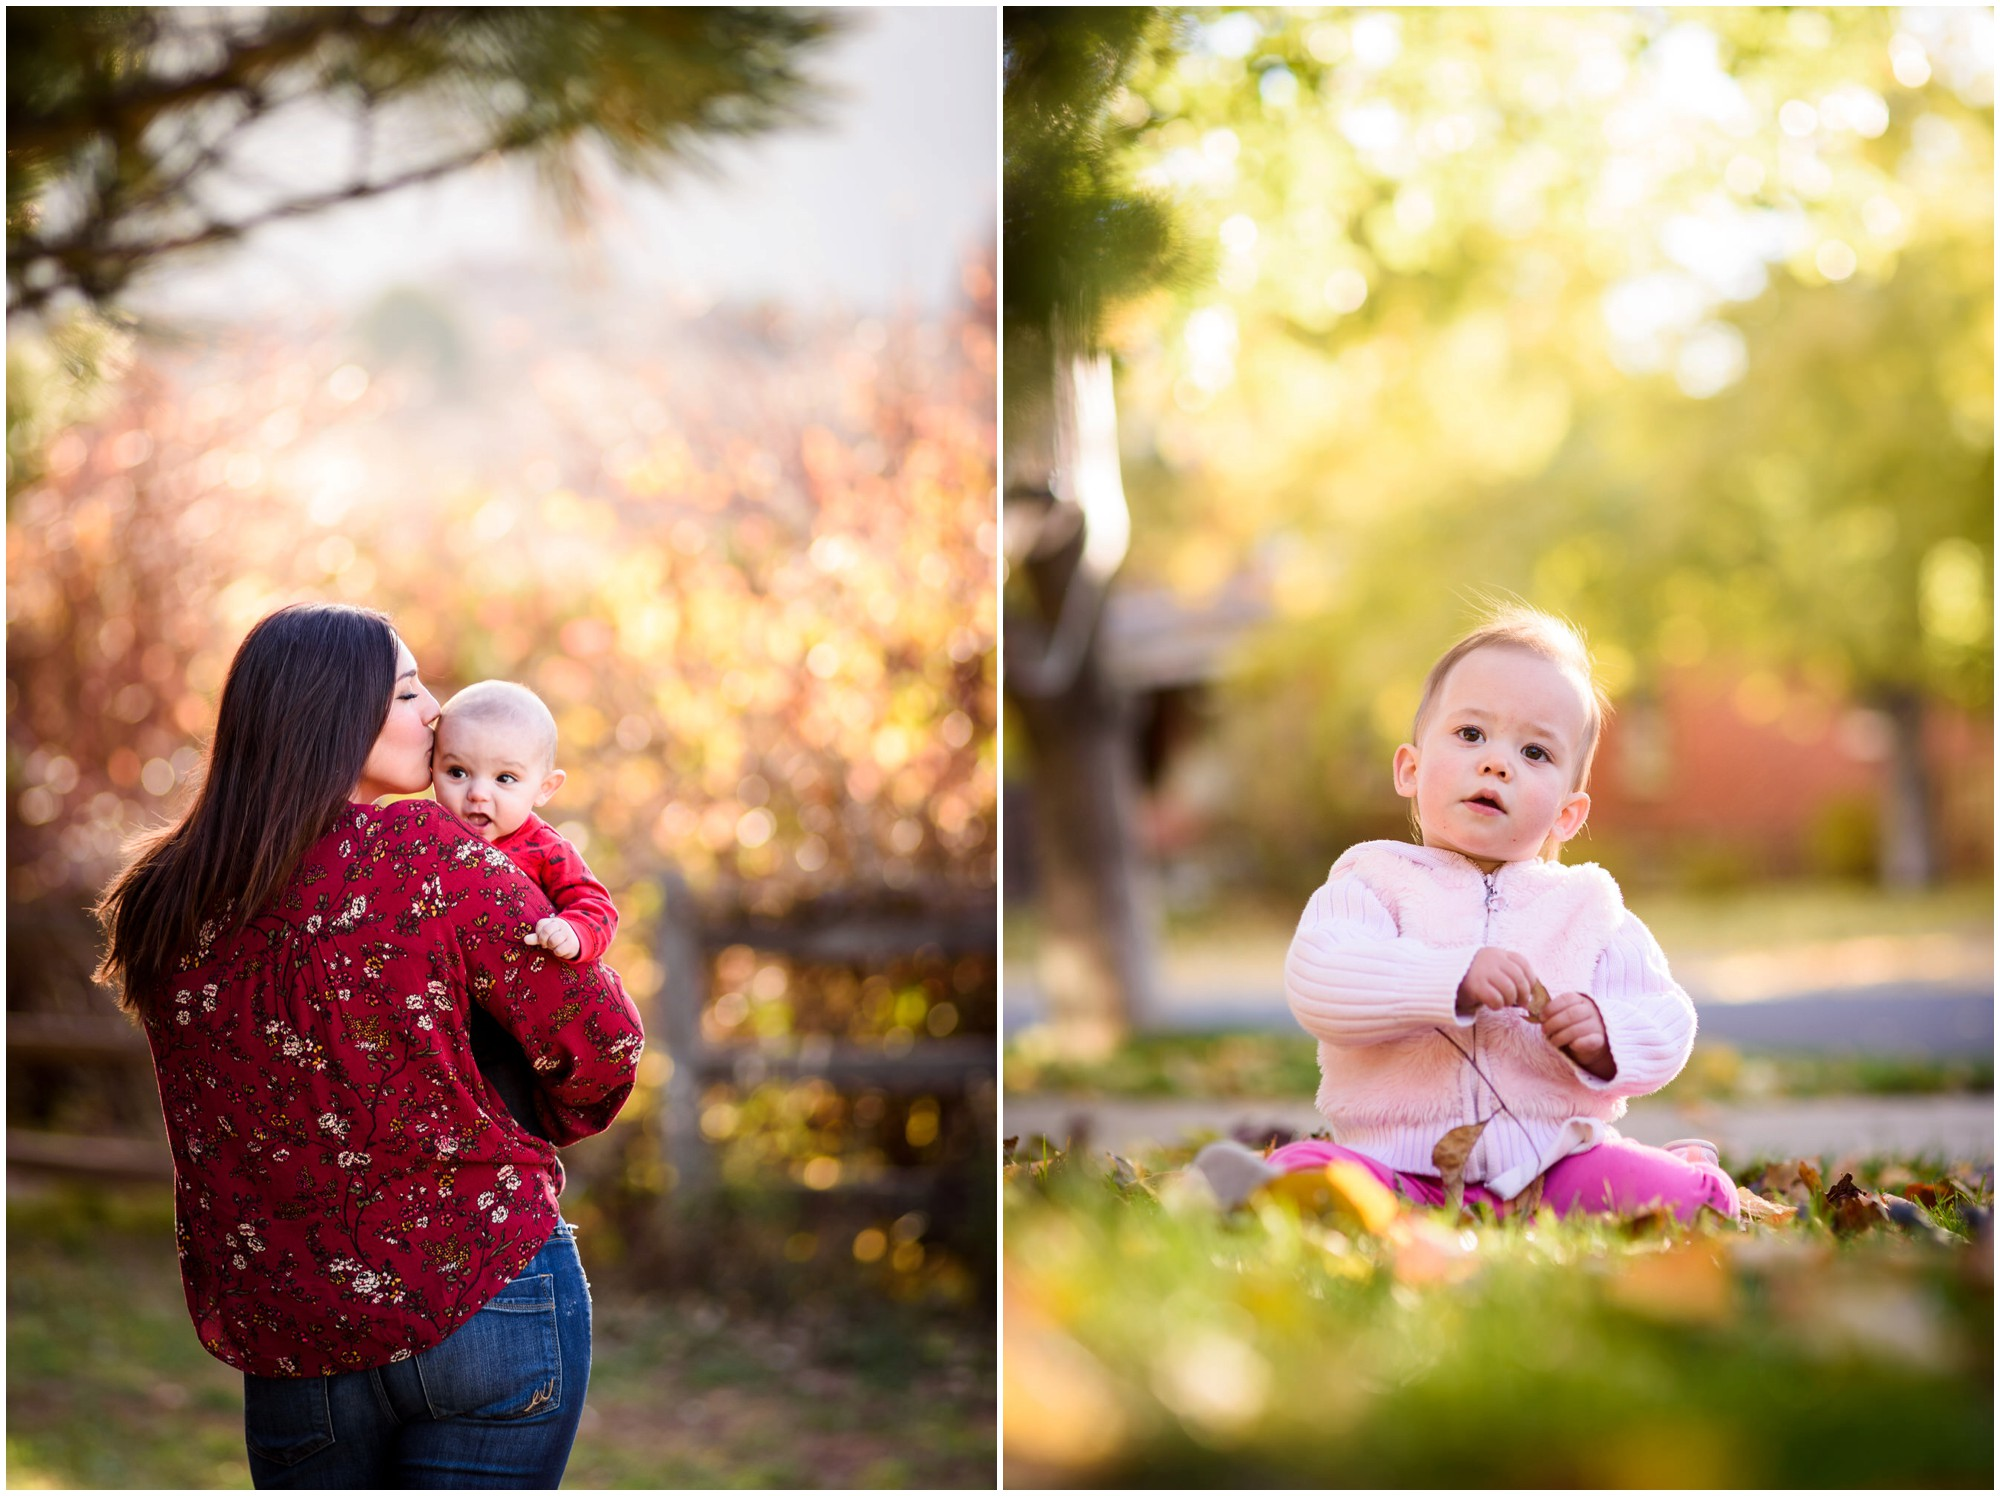 84-Denver-fall-baby-and-mom-photography.jpg